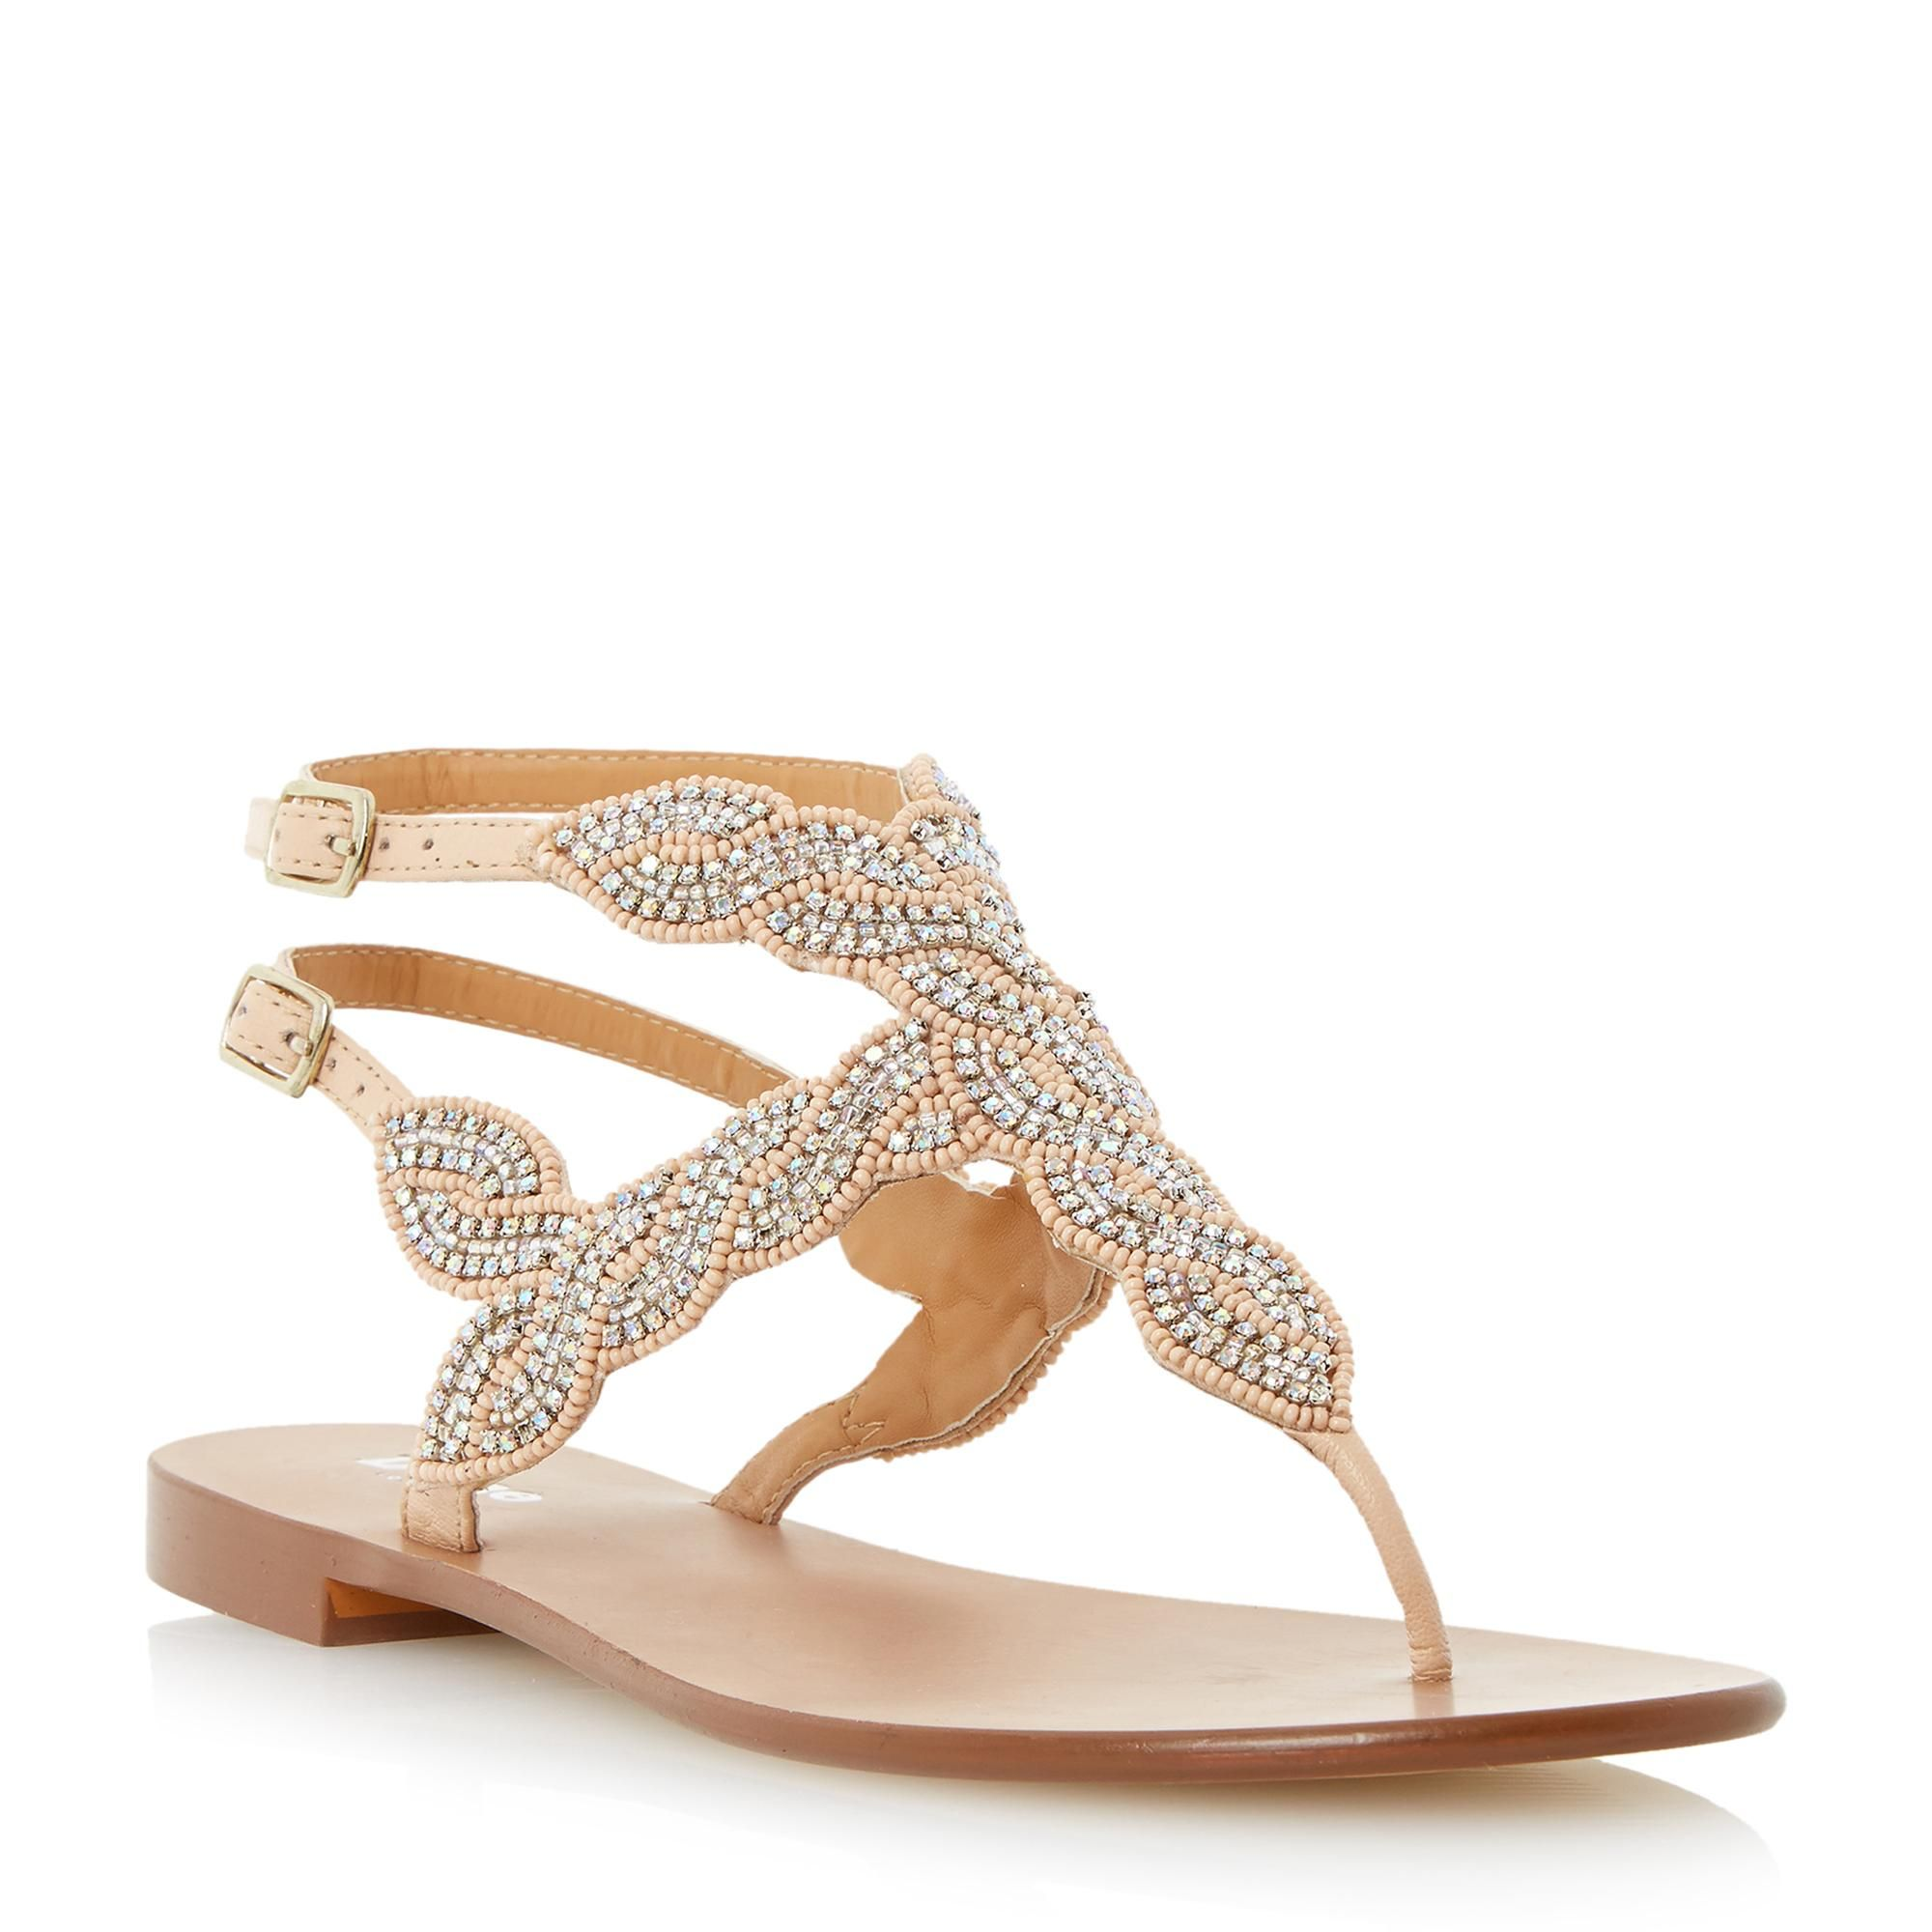 eceb2f0050f06 DUNE LADIES KARPER - Beaded Toe Post Sandal - nude